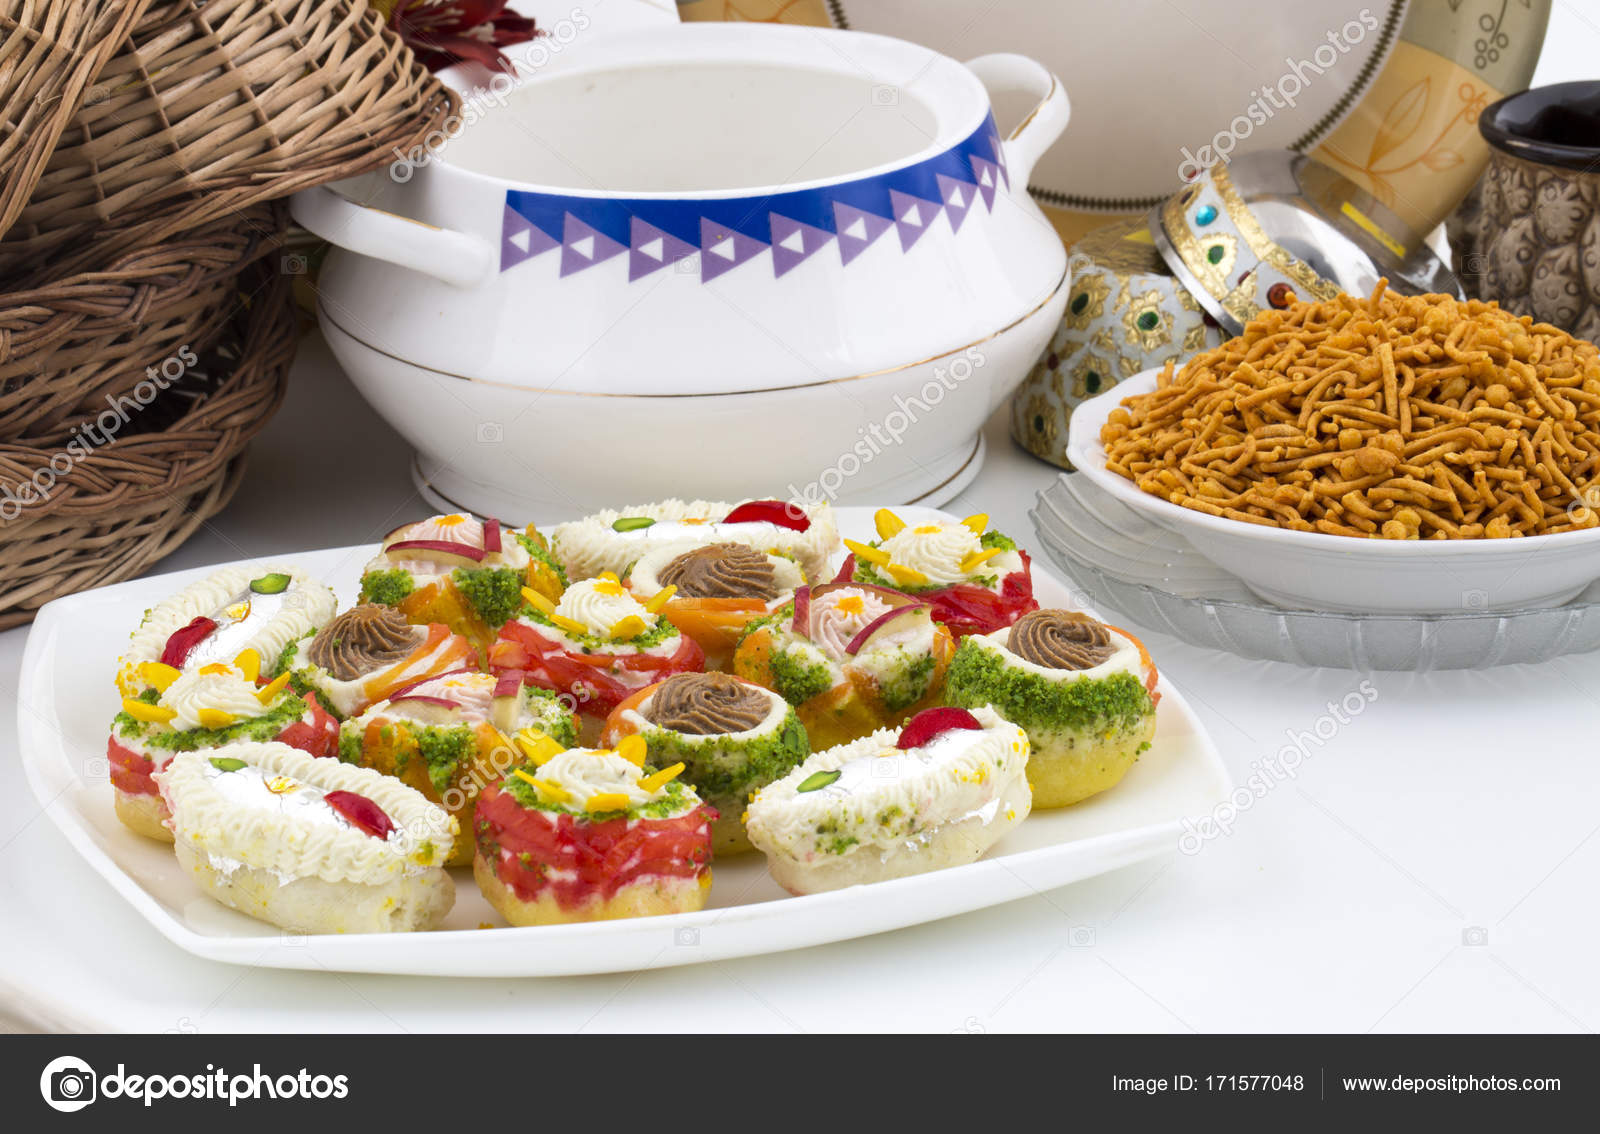 Bangali sweet food stock photo csstockimages 171577048 indian traditional bengali sweet food also know as bangla sweet or bengali dessert isolated on white background photo by csstockimages forumfinder Gallery